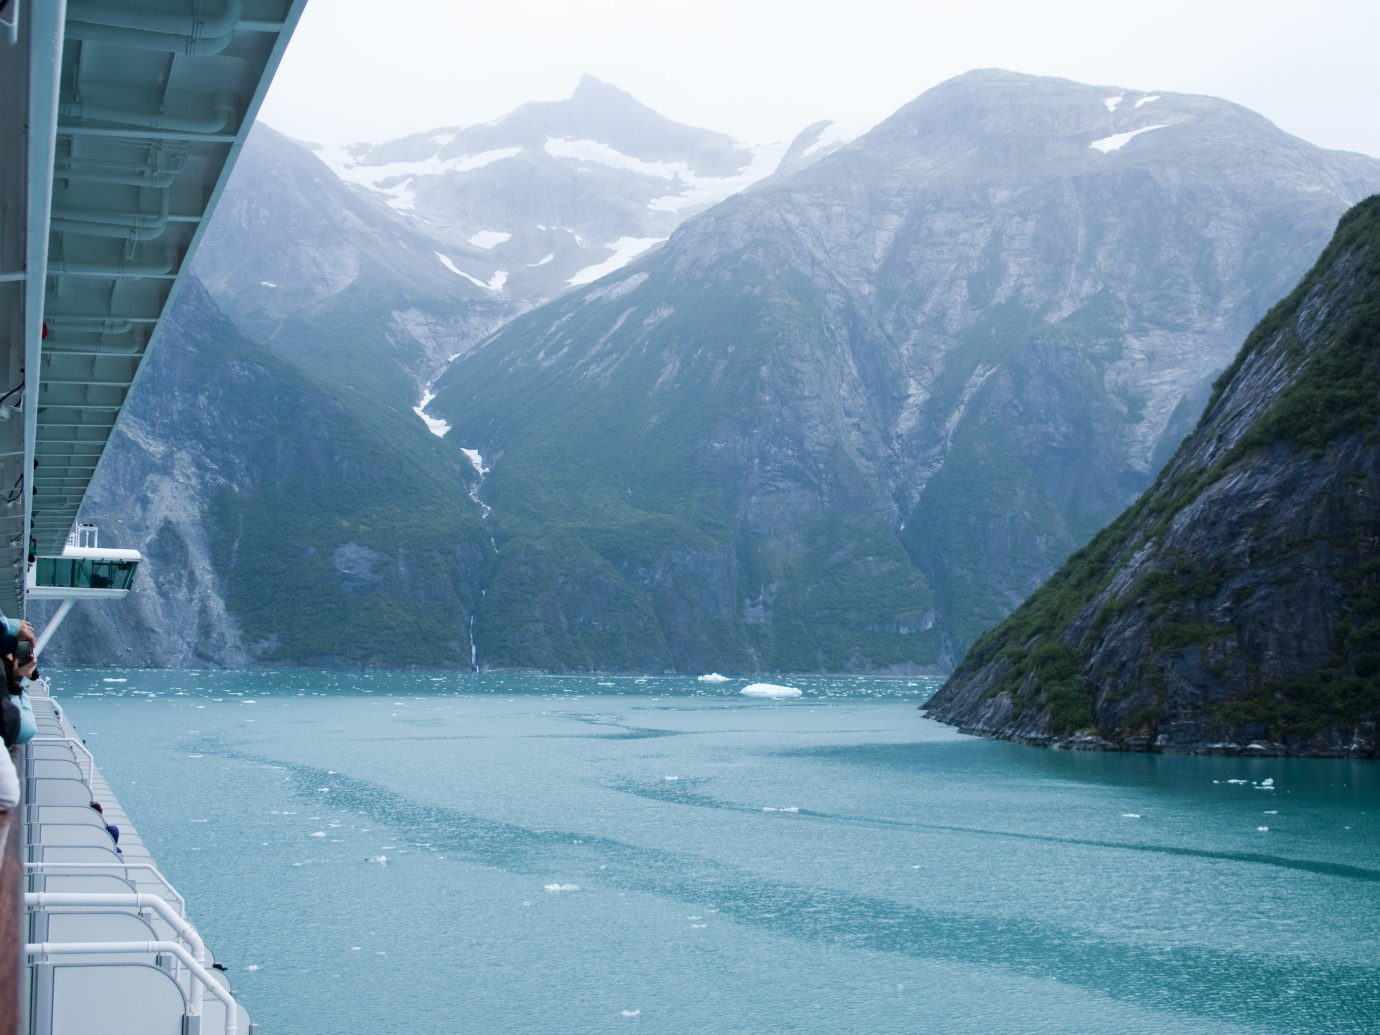 Trip Ideas mountain outdoor water sky Boat landform geographical feature fjord Nature glacial landform vehicle Sea passenger ship mountain range bay glacier surrounded distance